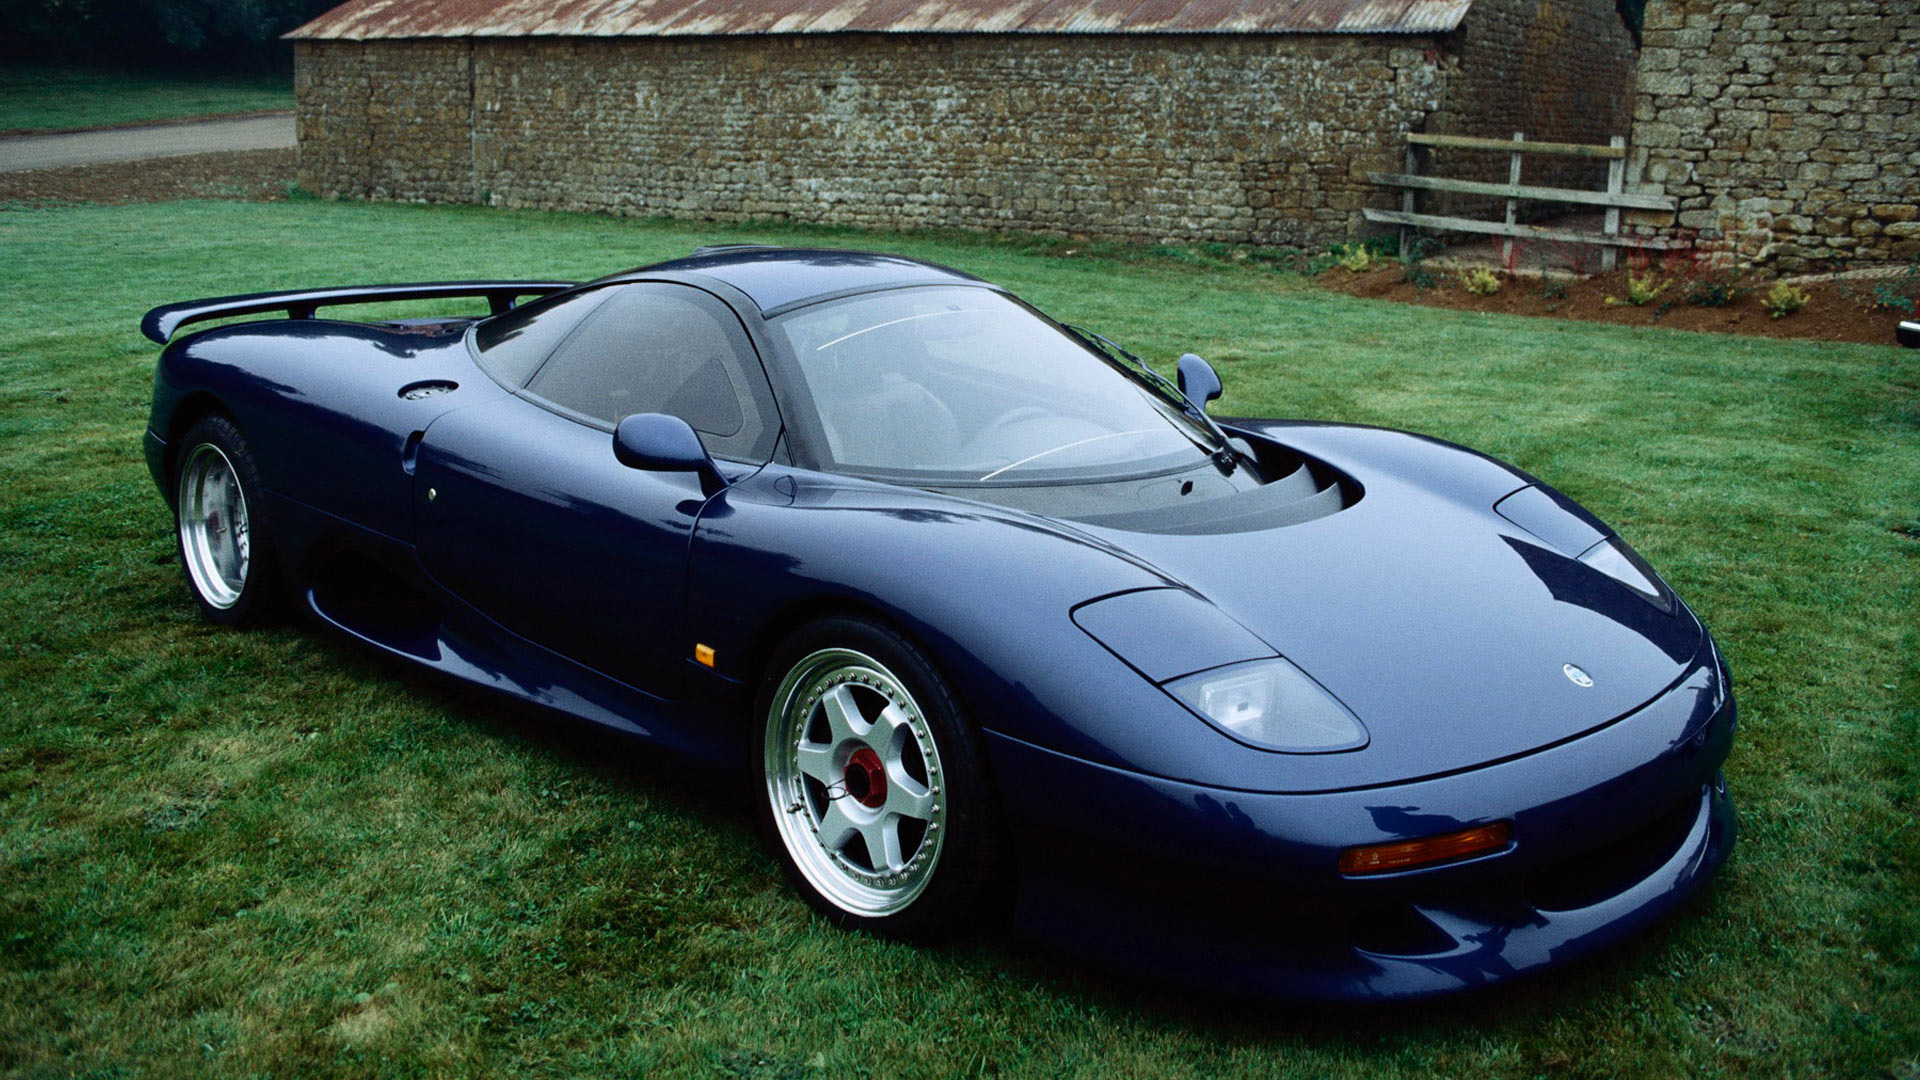 Jaguar Xjr 15 Supercars Net